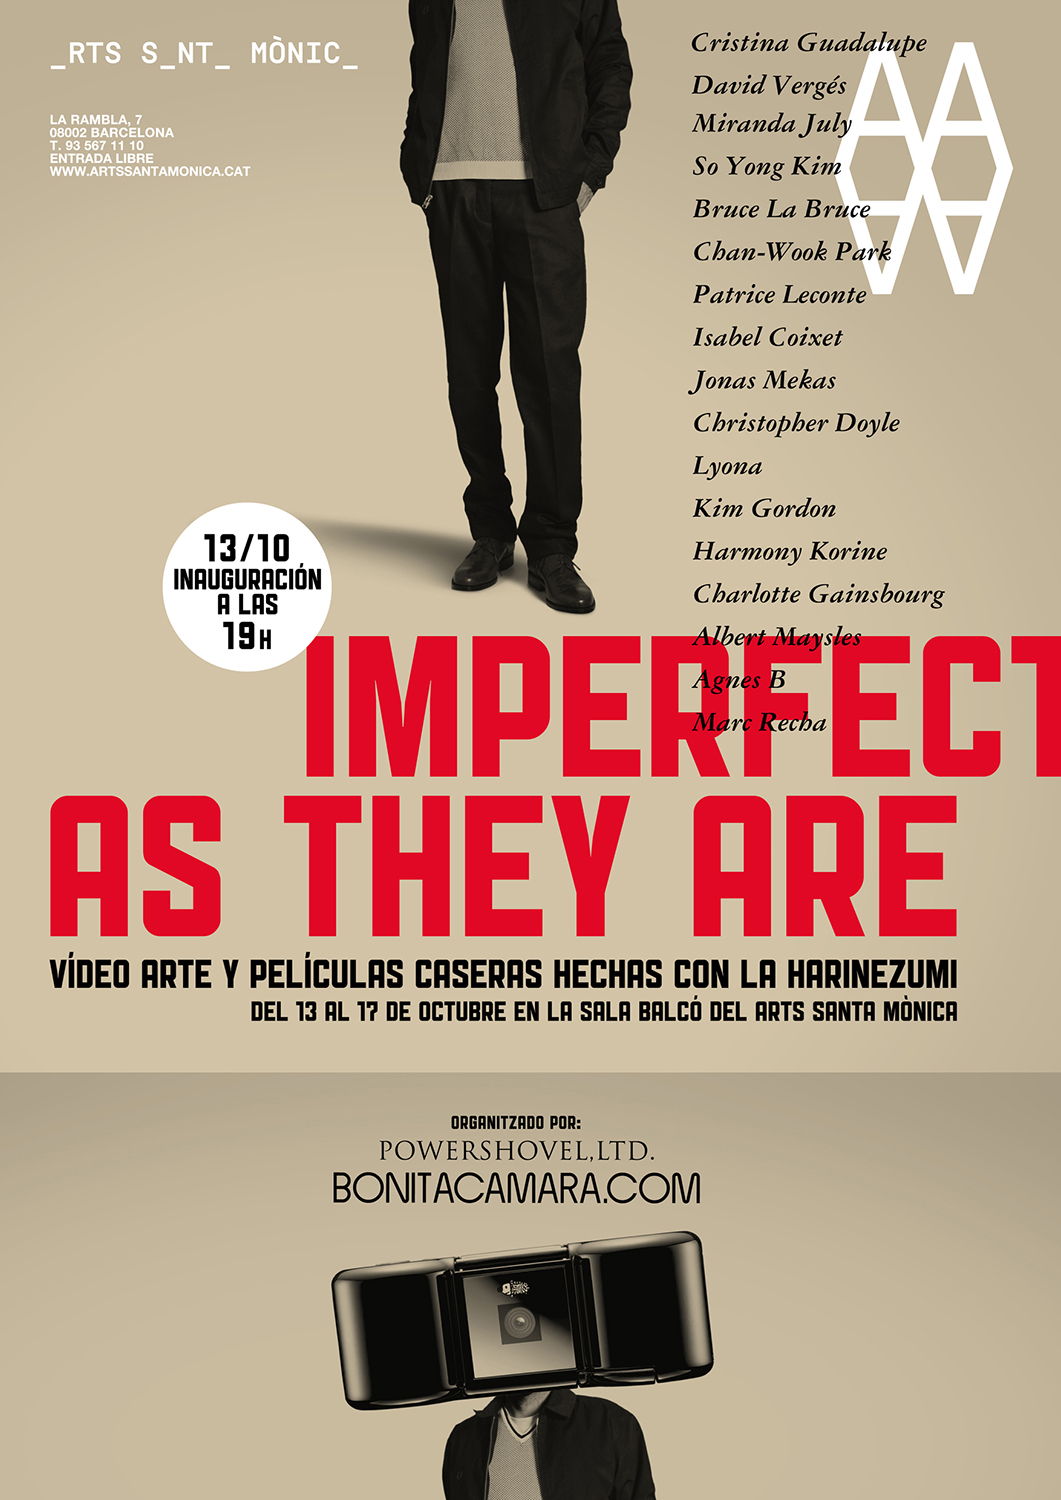 ImperfecAsTheyAre-CAST2_o